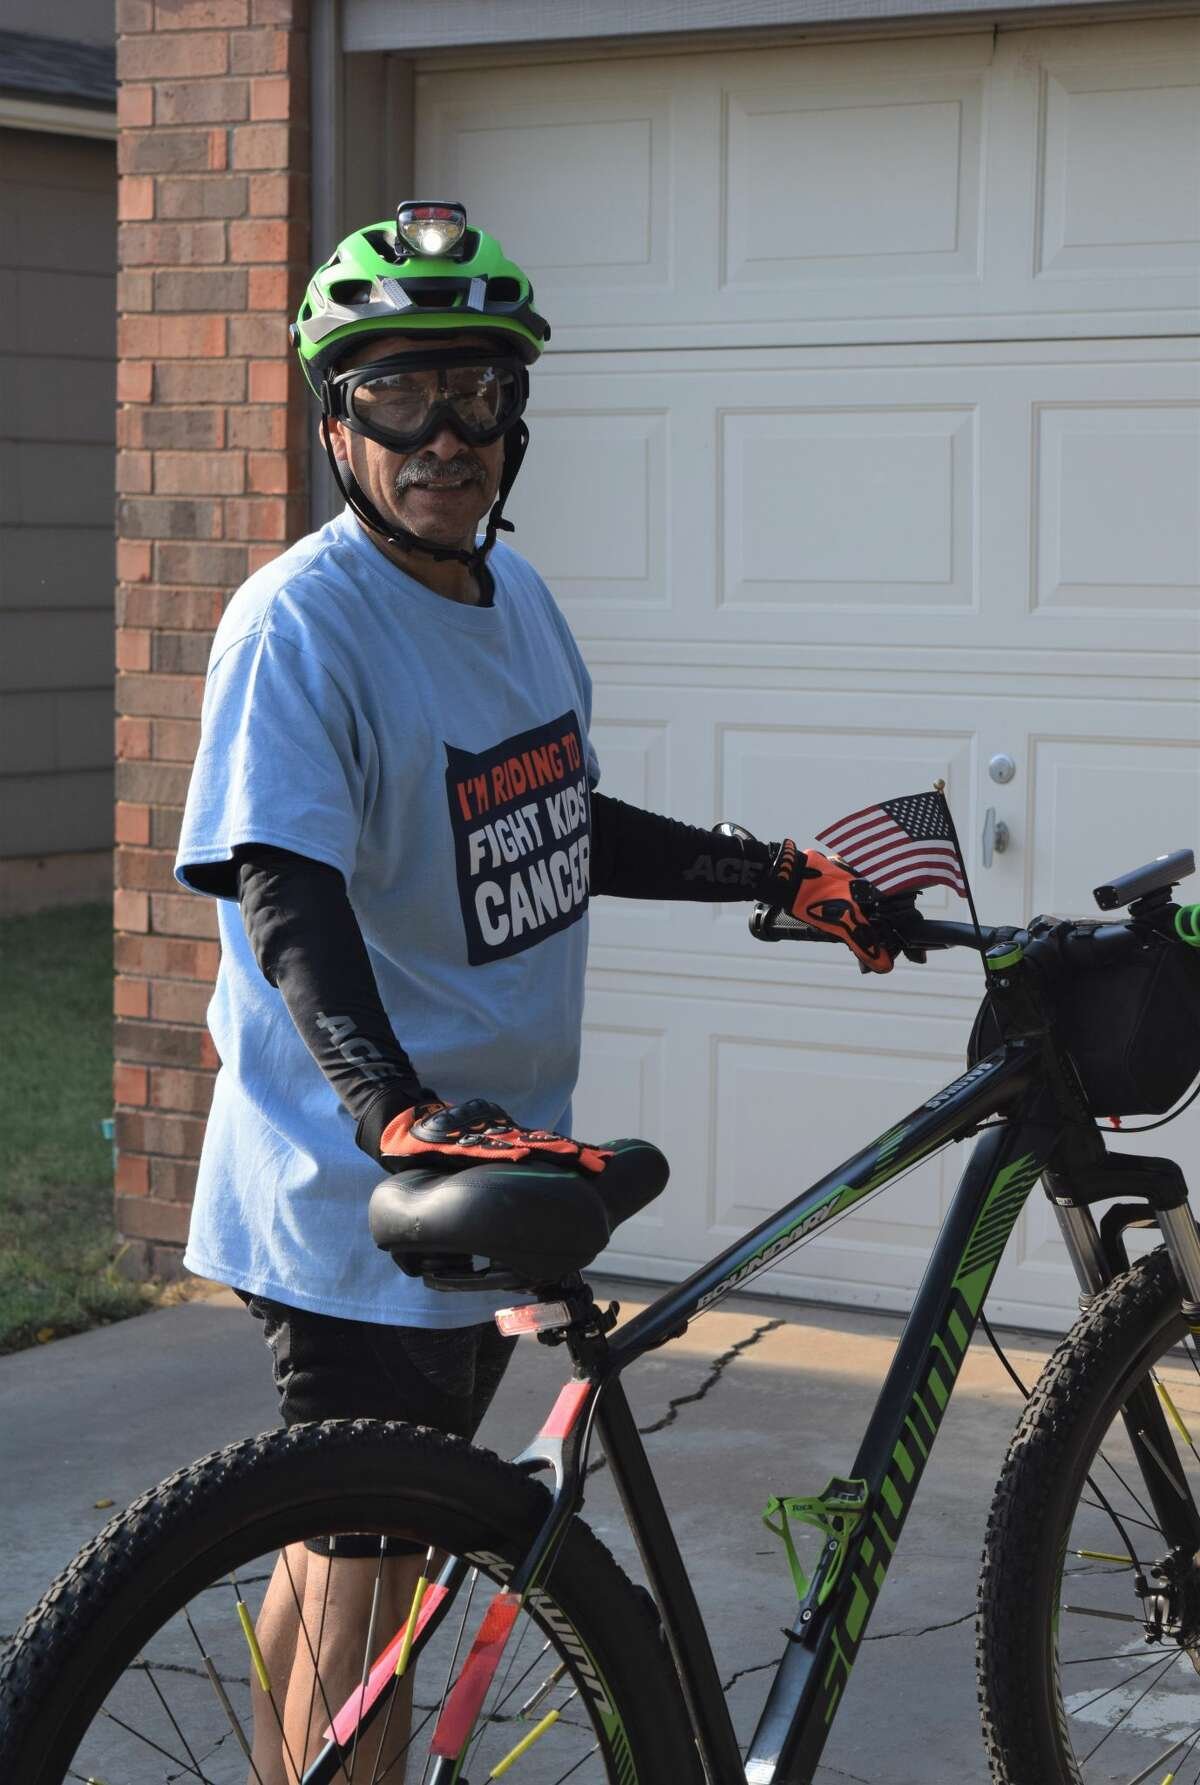 Cris Salinas has pledged to ride 300 miles and to raise $500 by the end of September. By Friday afternoon, his campaign, which can be found at https://greatcyclechallenge.com/Riders/CrisSalinas,